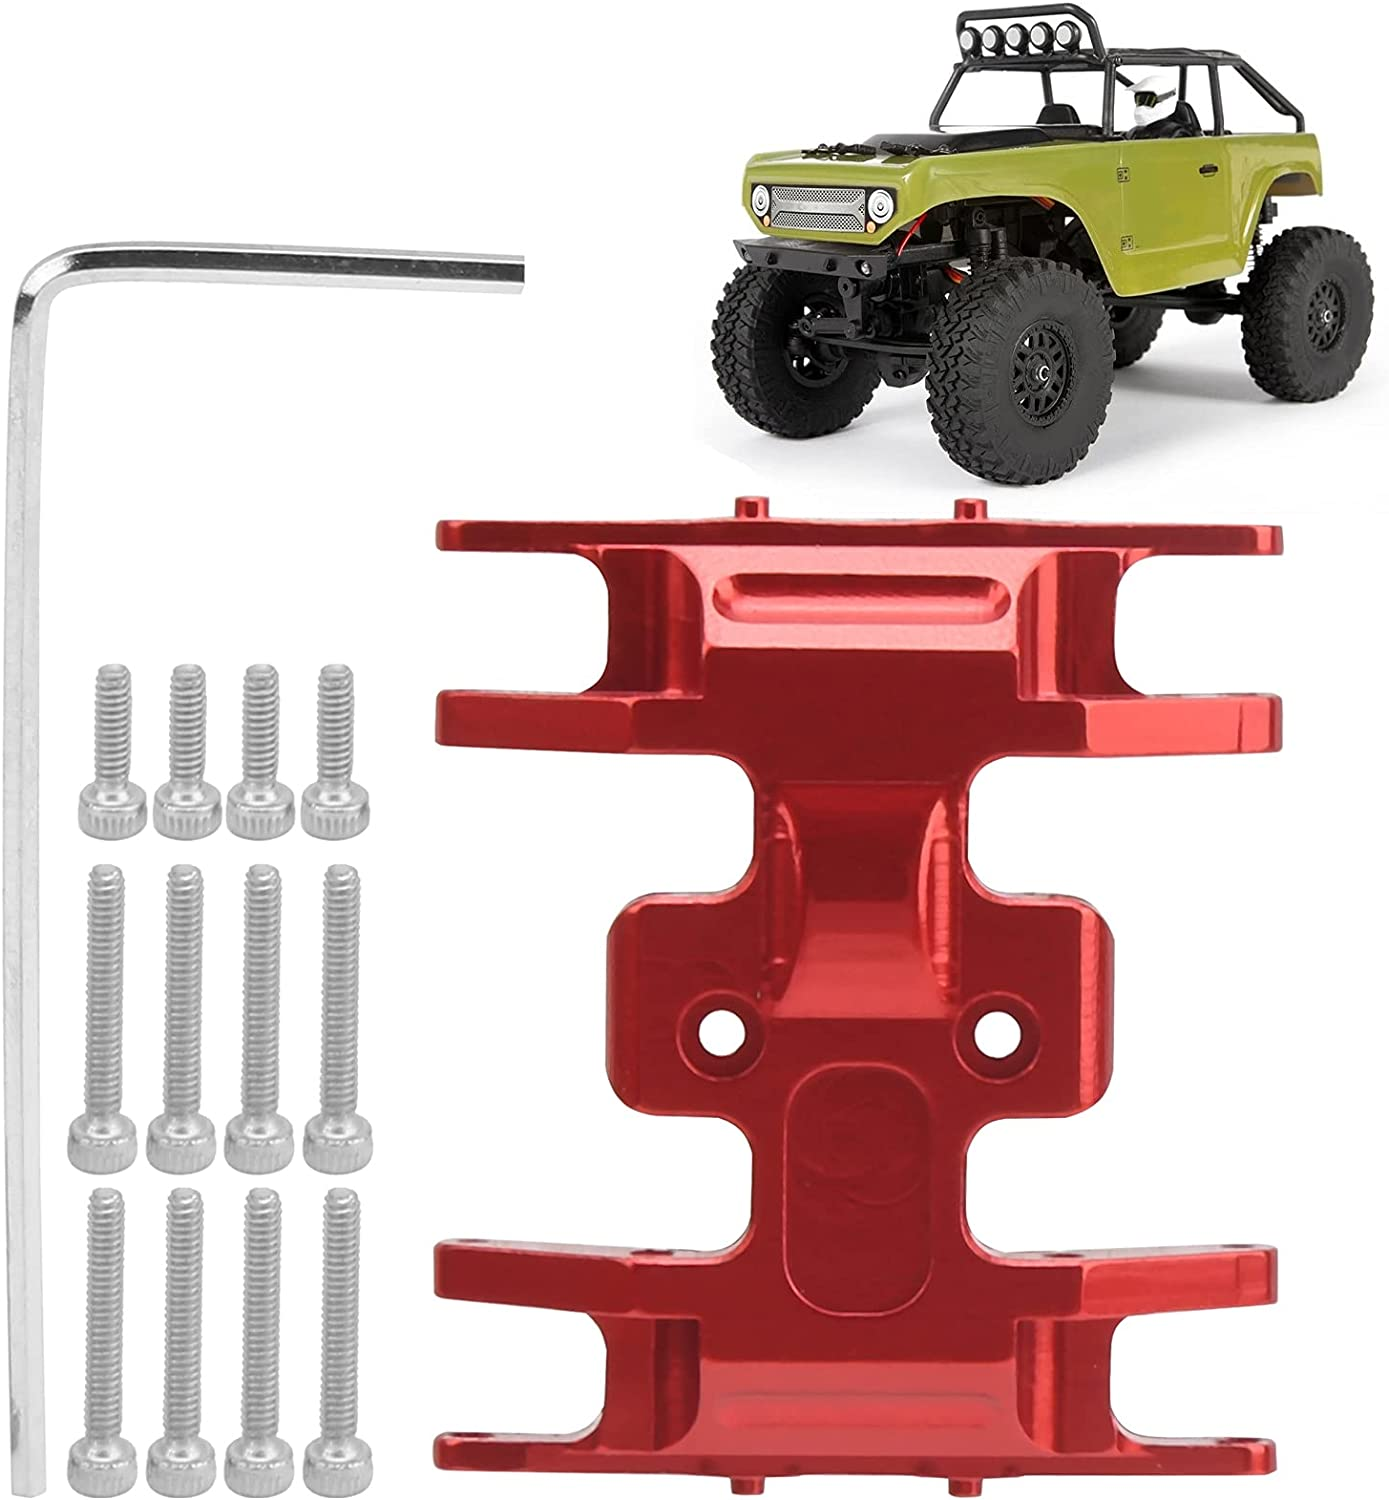 WNSC Middle Direct stock discount Ranking TOP20 Gearbox Skid Transmission Plate Mount Holde